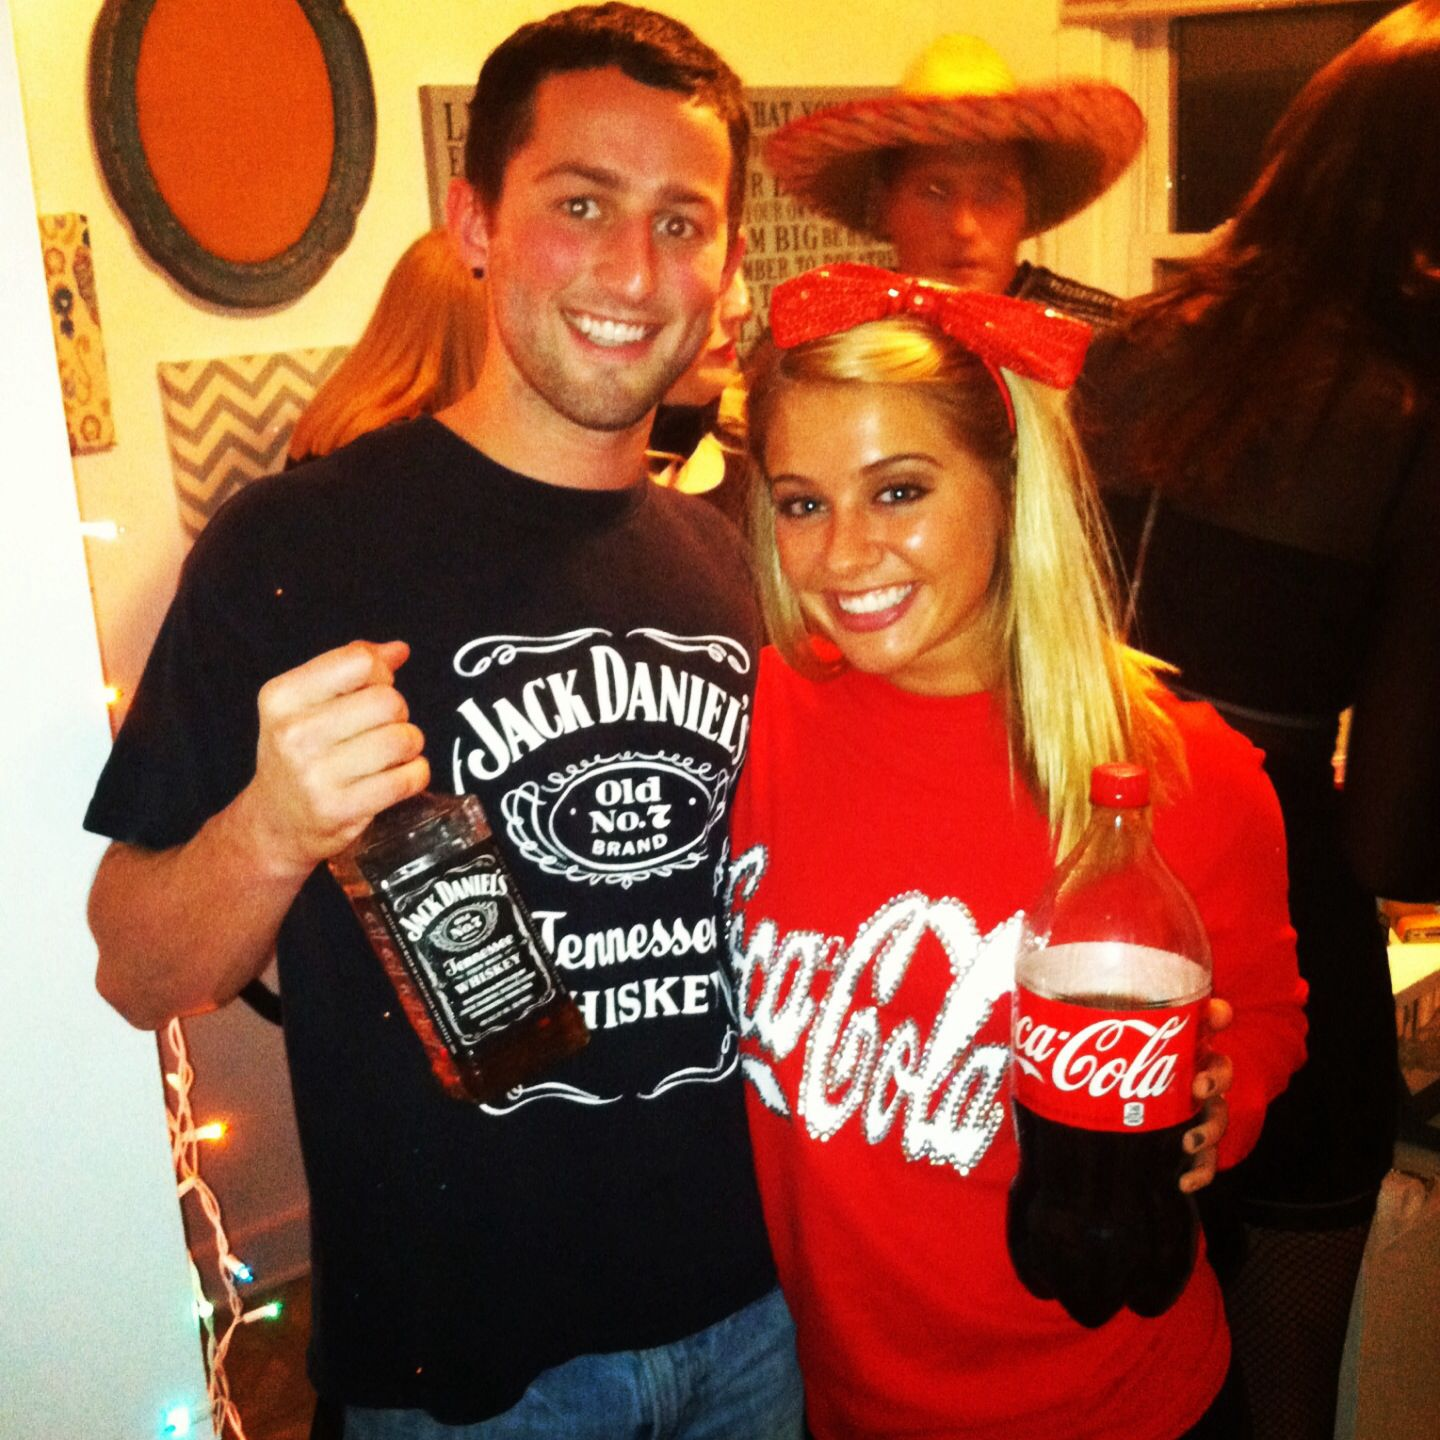 Jack And Coke Costumes This Year So Easy To Do